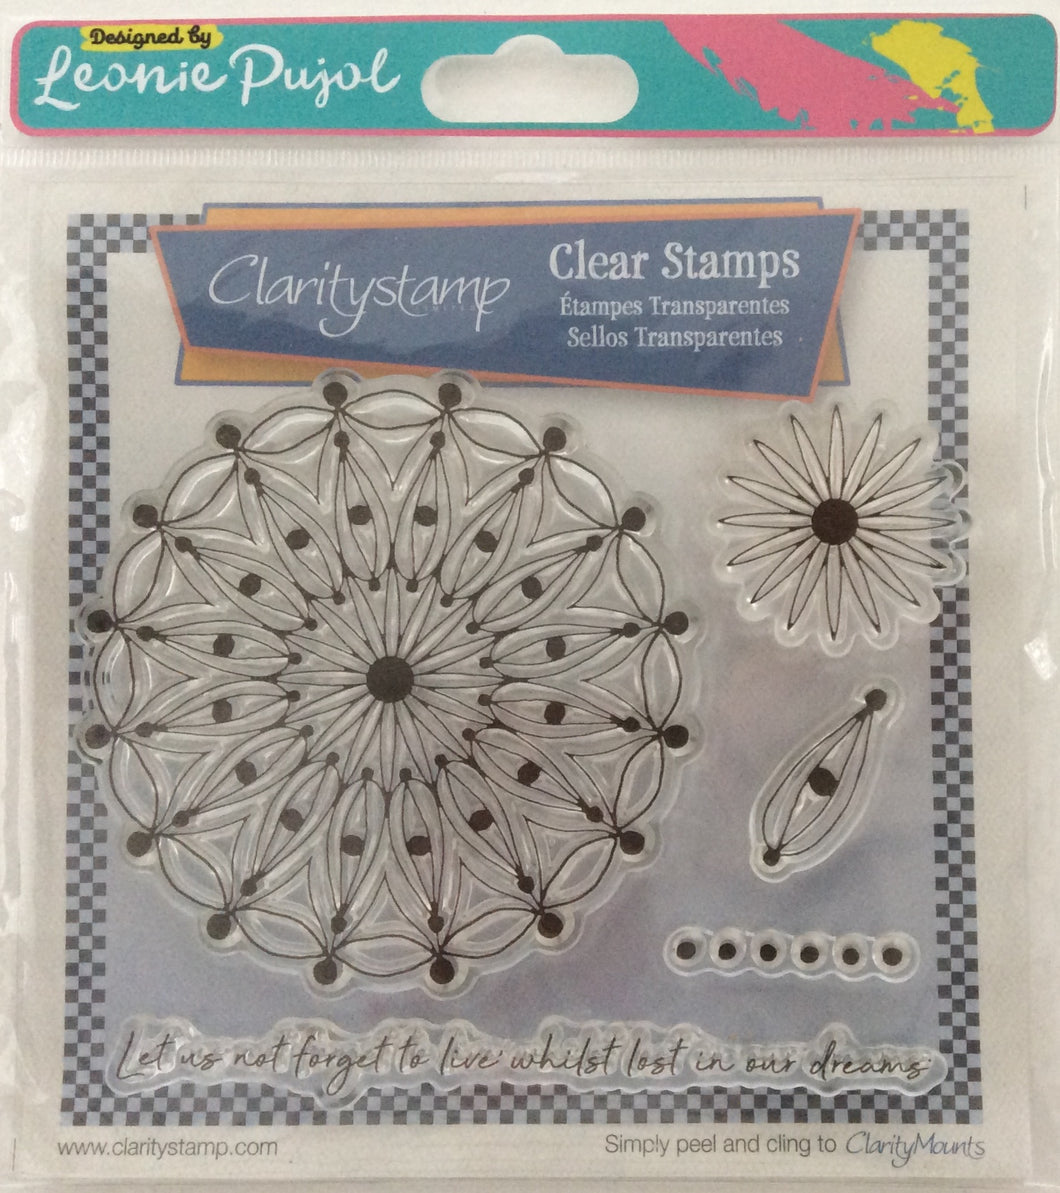 Clarity Stamp Unmounted Clear Stamp Set of 5 Designed by Leonie Pujol - Dream Circus